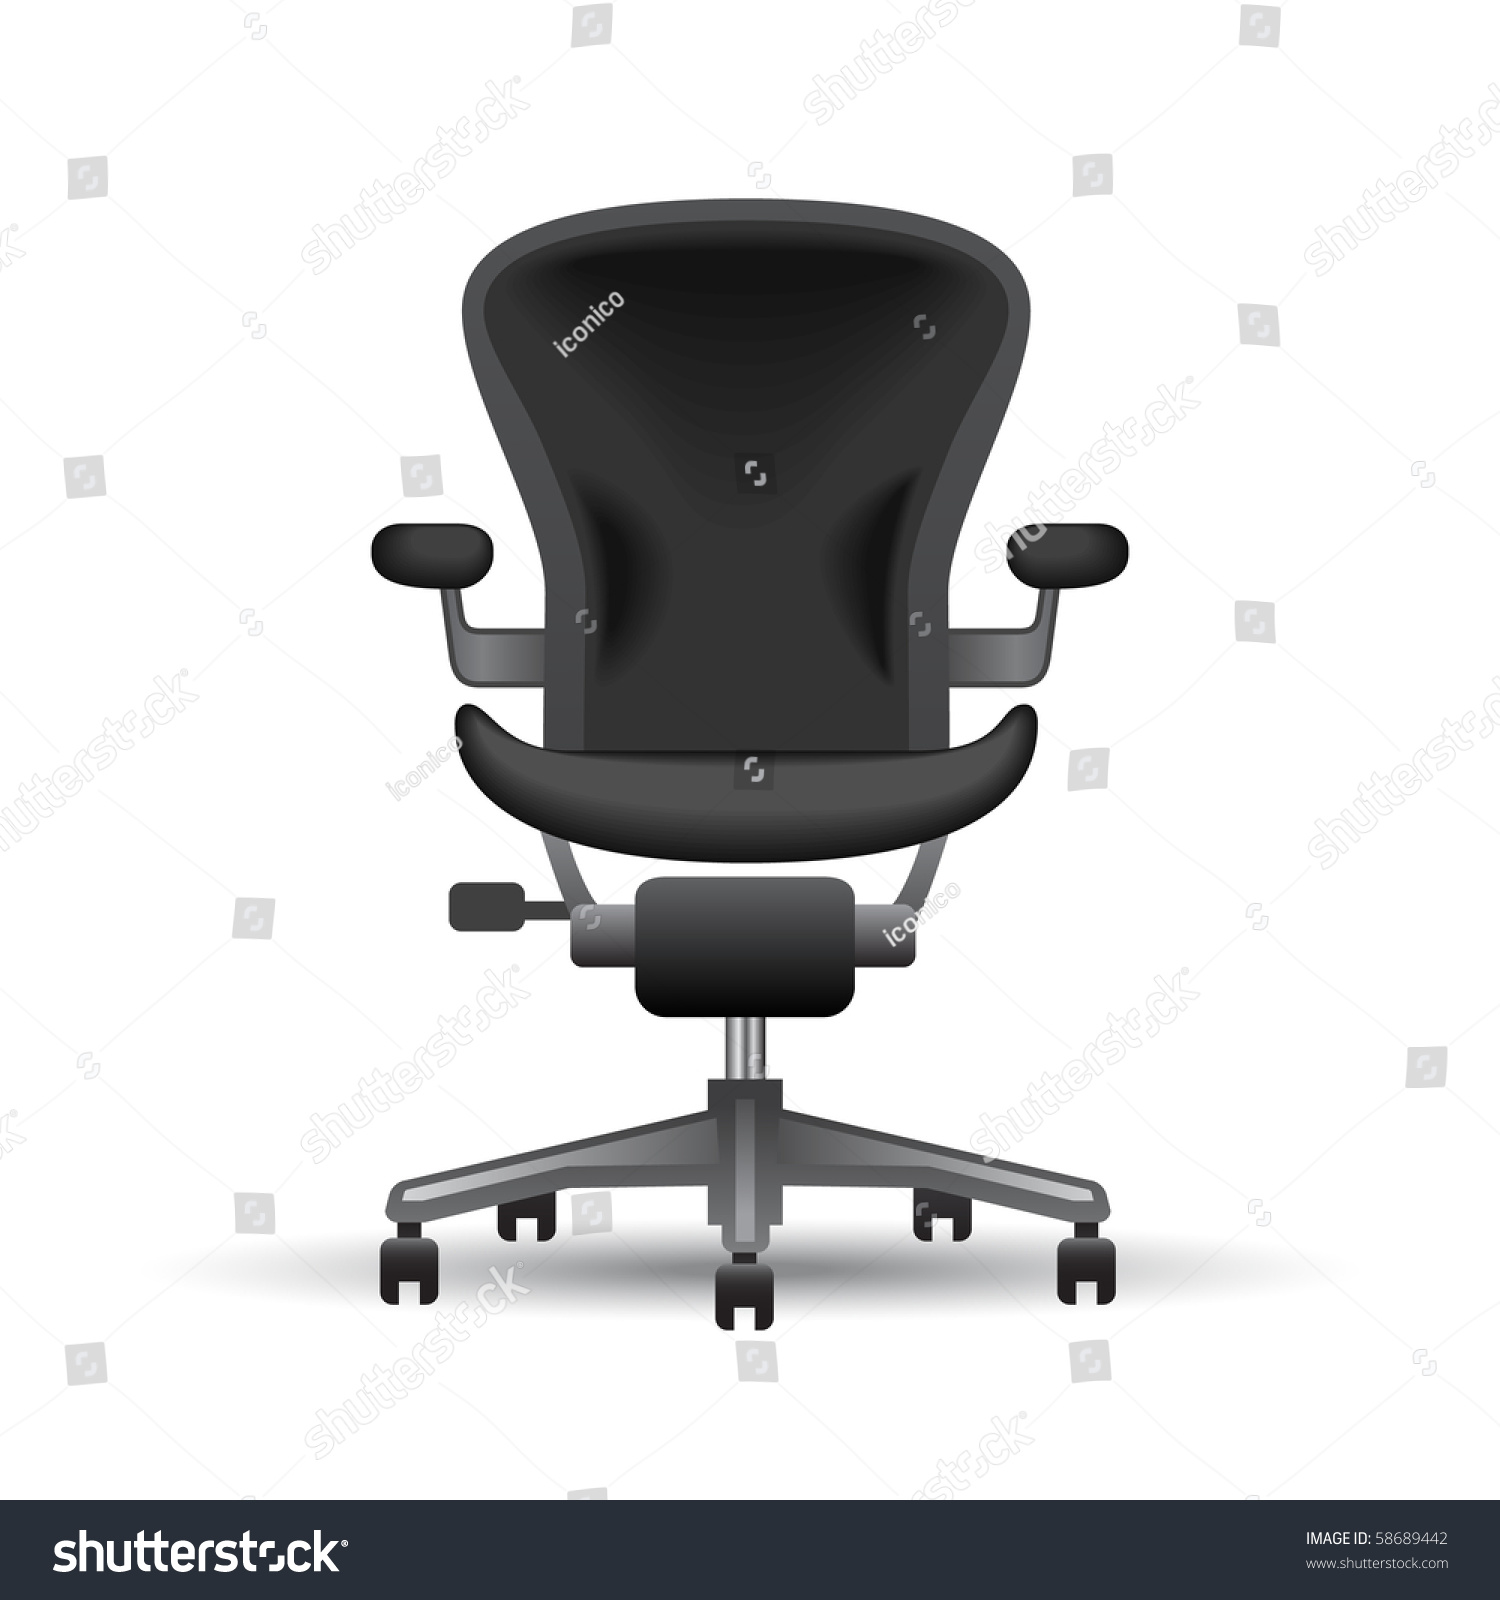 office chair illustration old fashioned rocking neopets stock vector 58689442 shutterstock